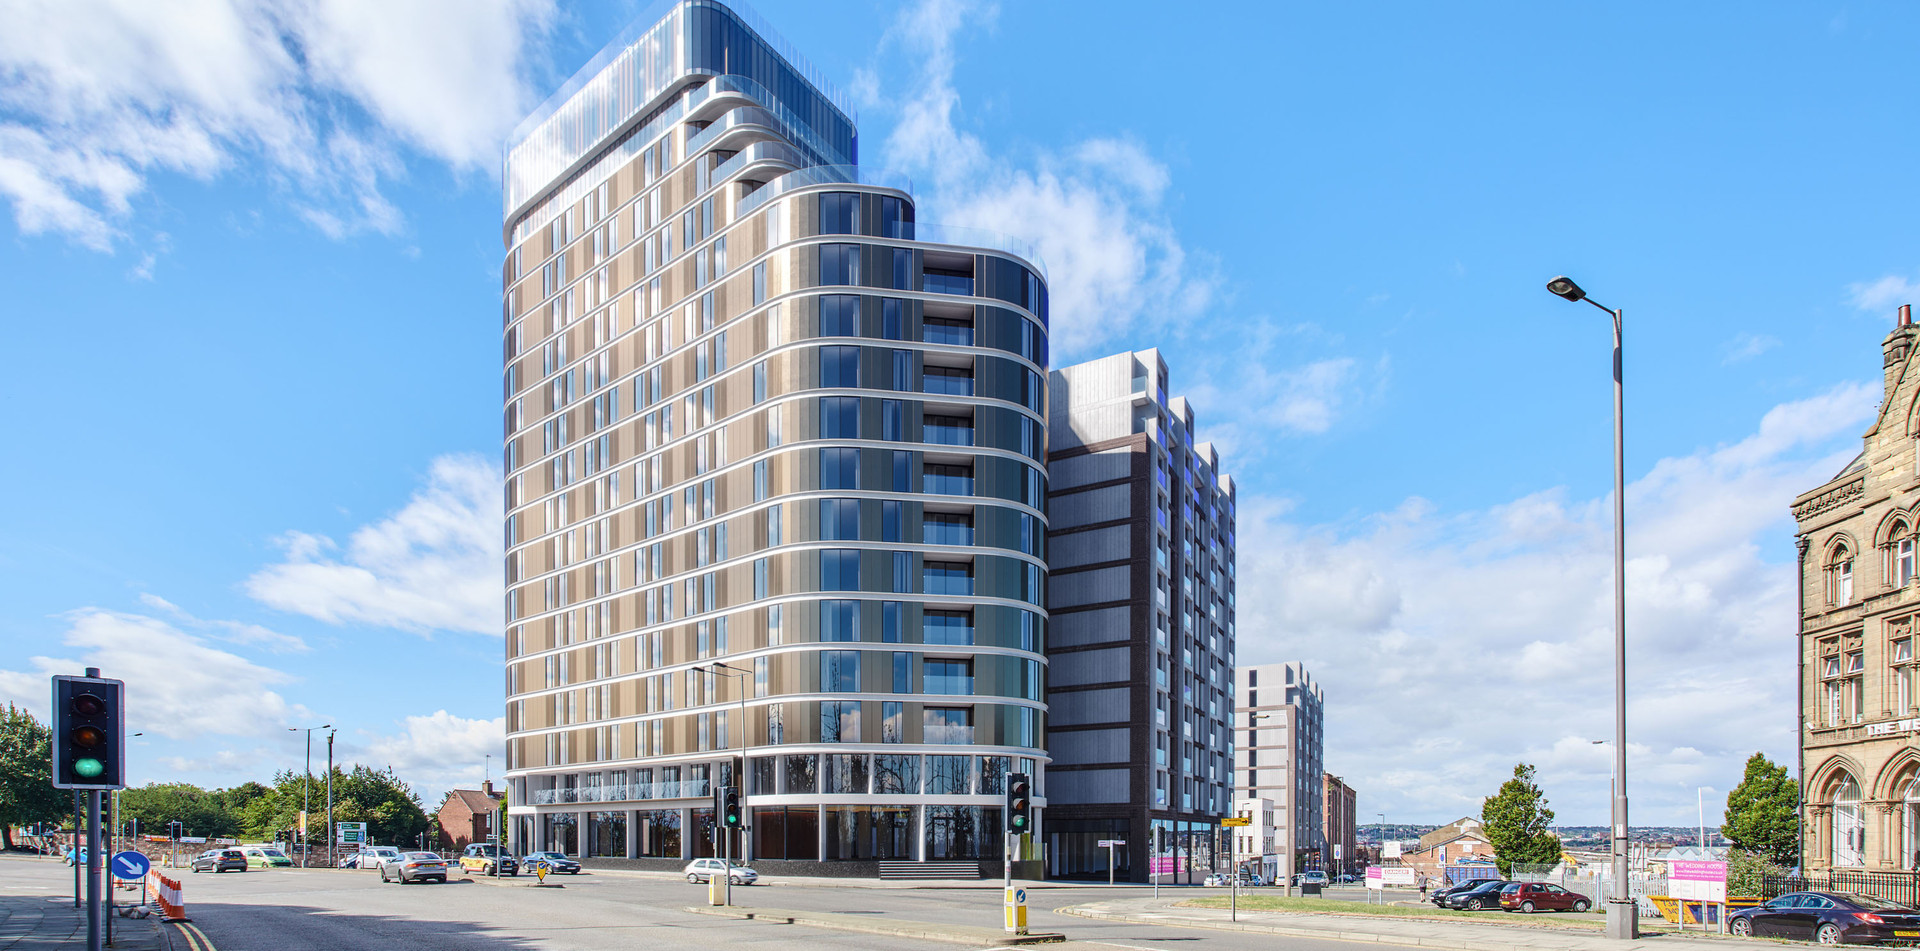 Parliament Square Resdential Property Investment in Liverpool UK